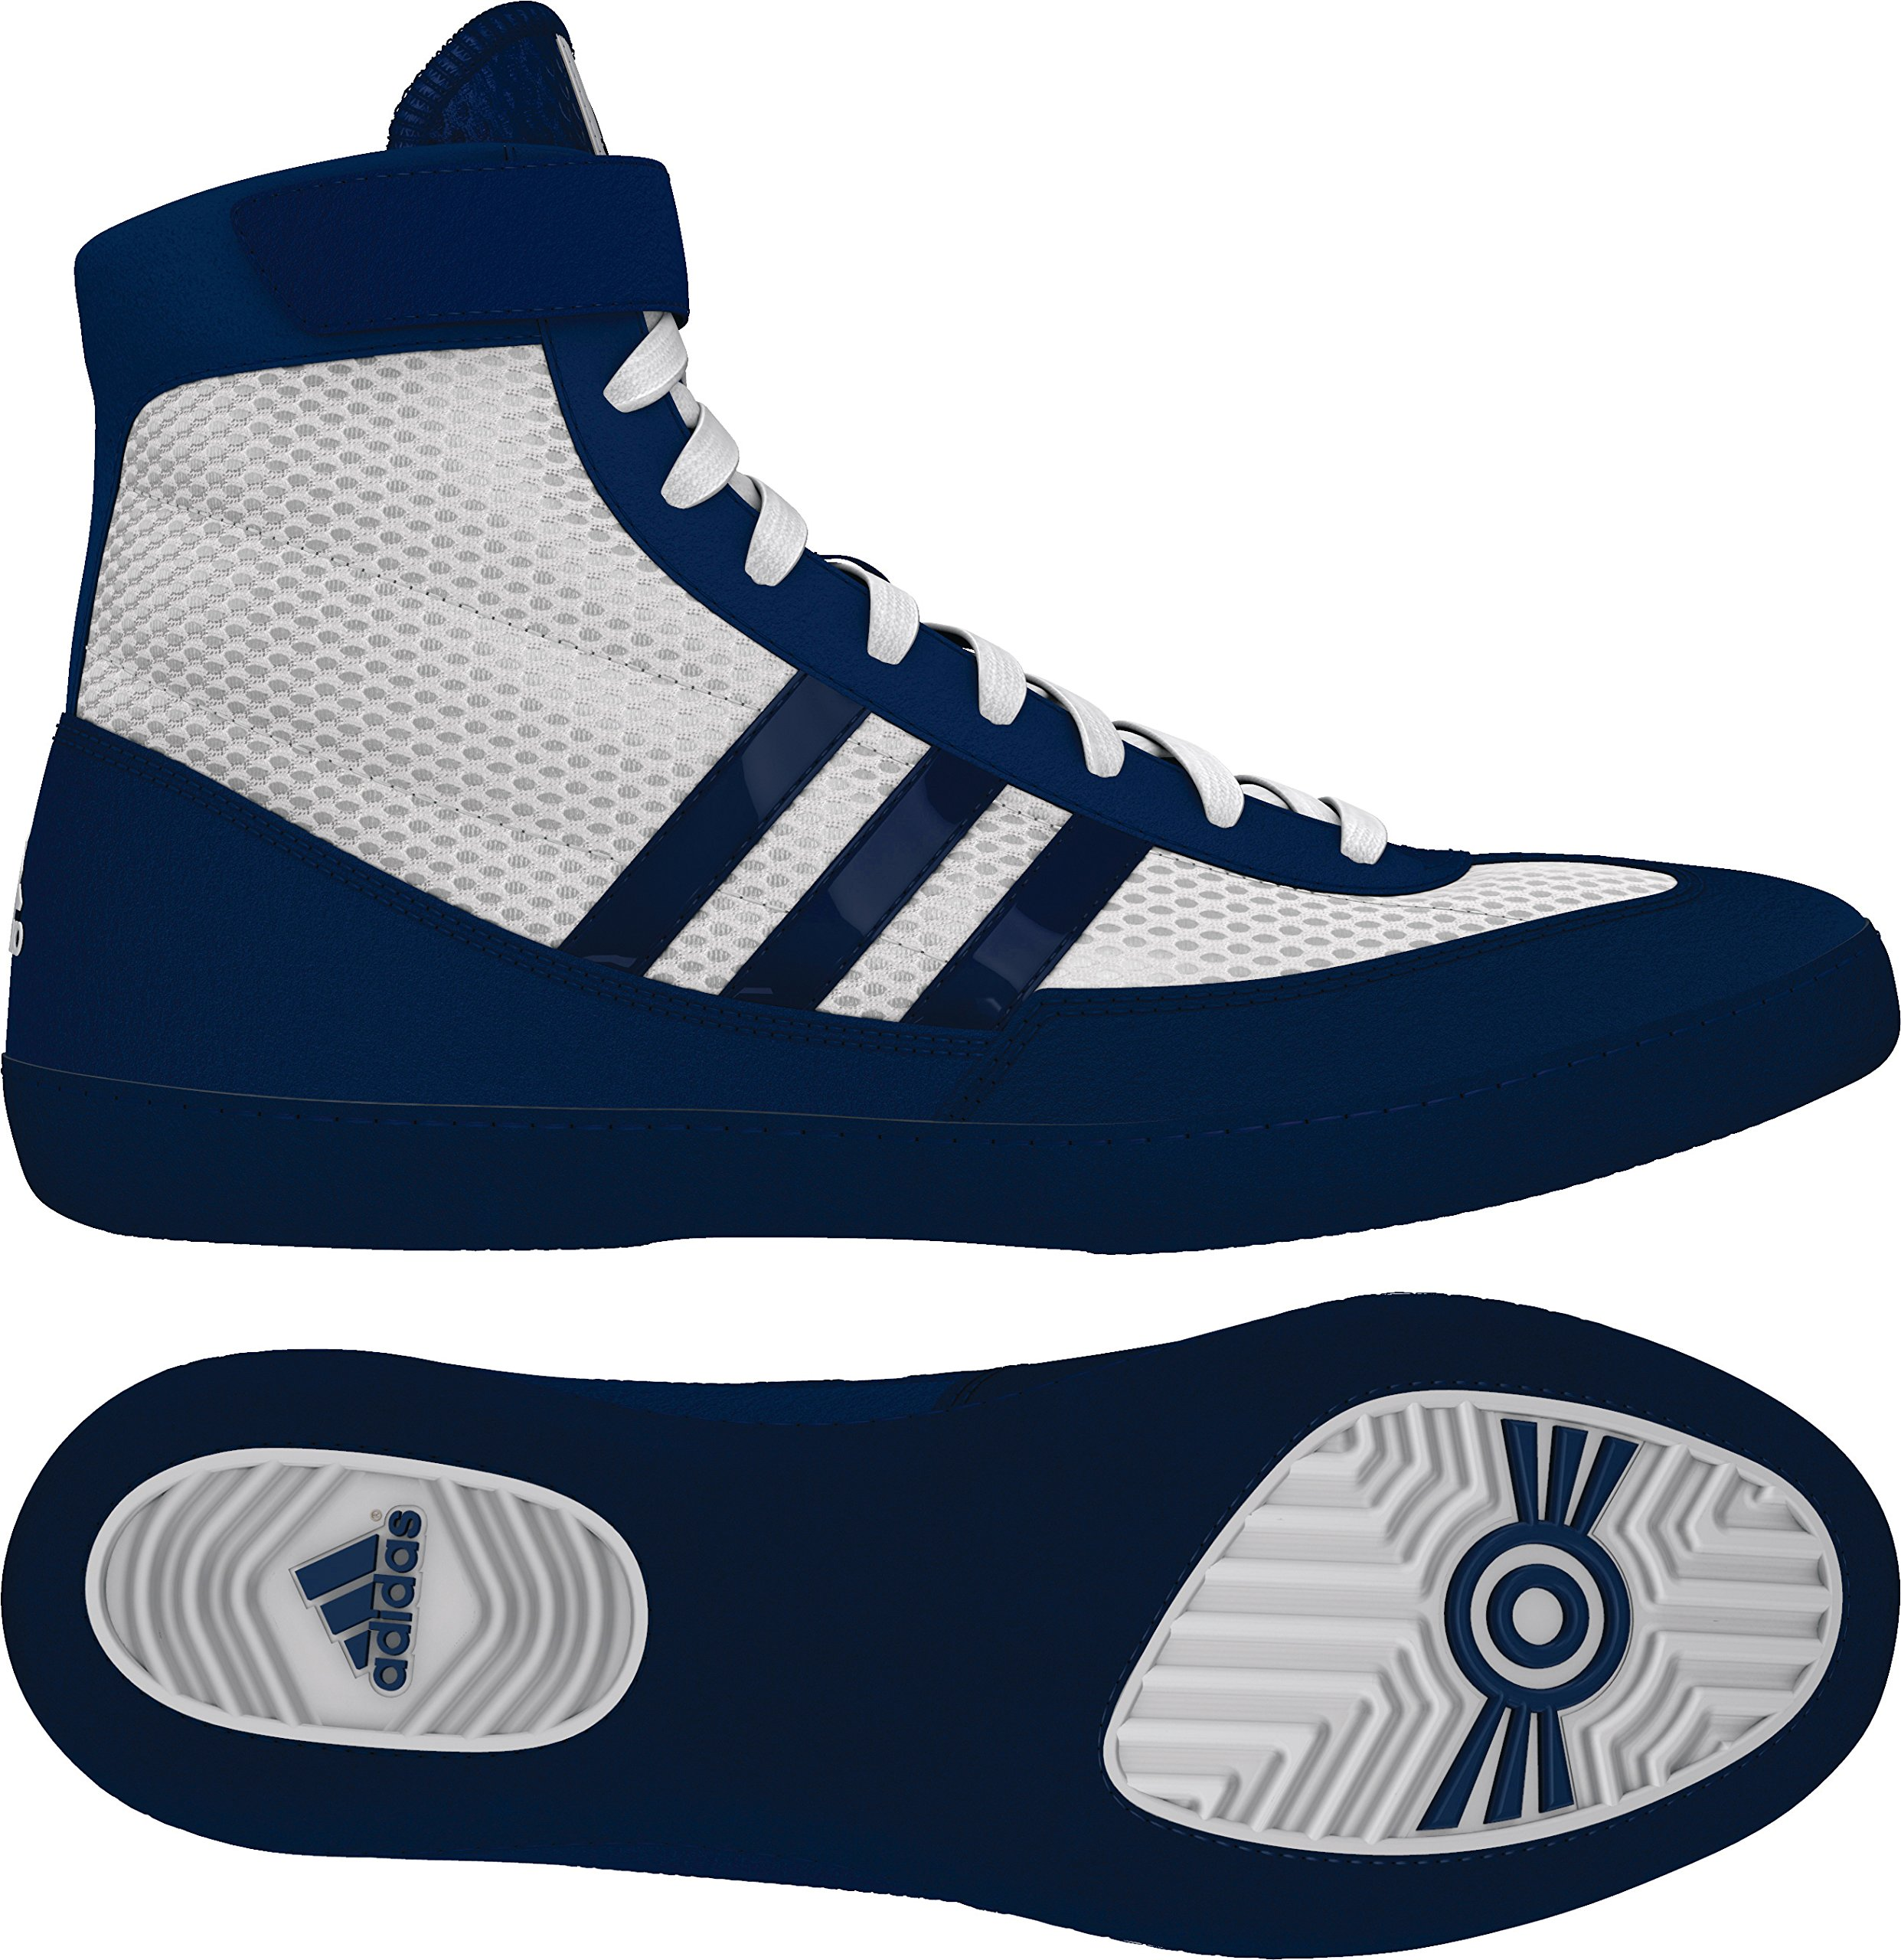 Adidas Combat Speed 4 Youth Wrestling Shoes - White/Navy/White - 5